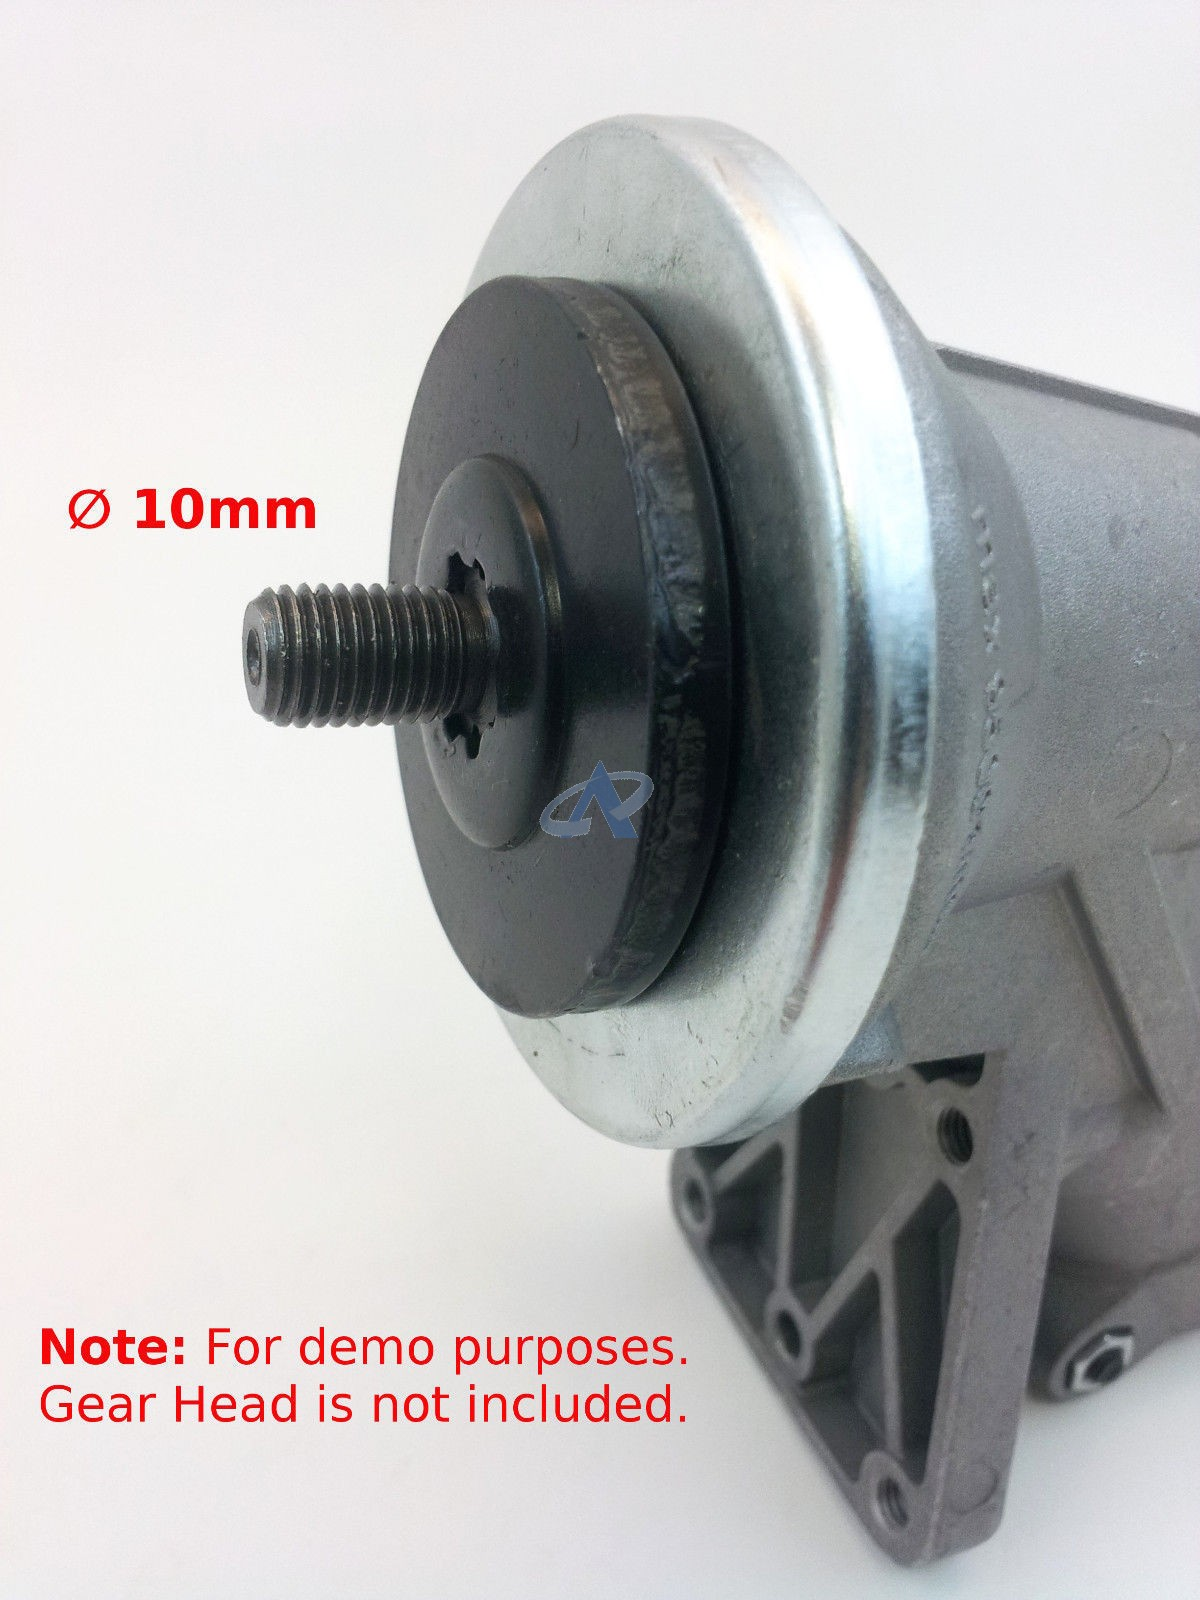 ... Trimmer Head for GREEN MACHINE models (Double-Line Nylon, LHF / LHM)